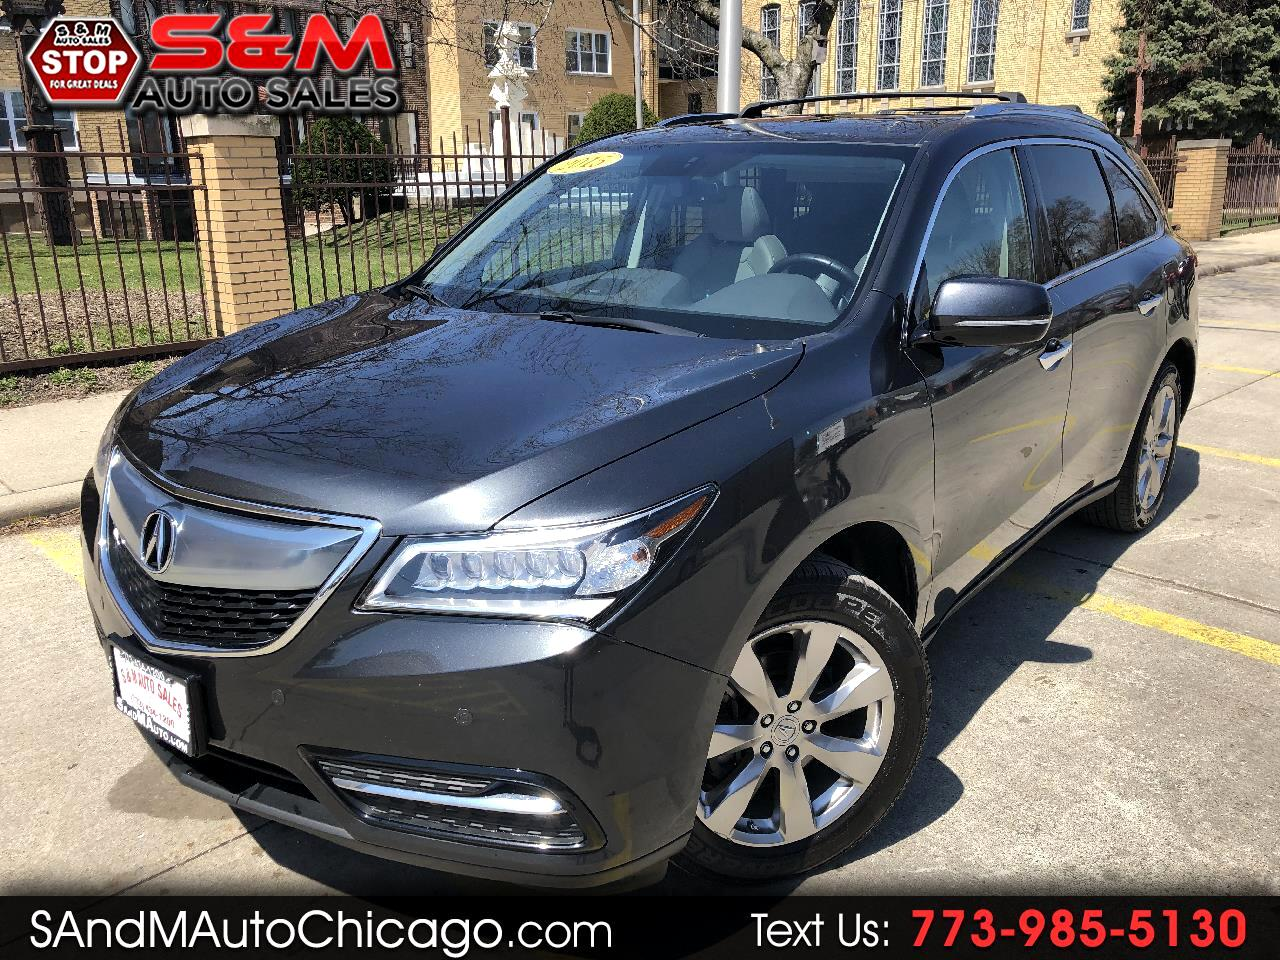 2015 Acura MDX SH-AWD 4dr Advance/Entertainment Pkg